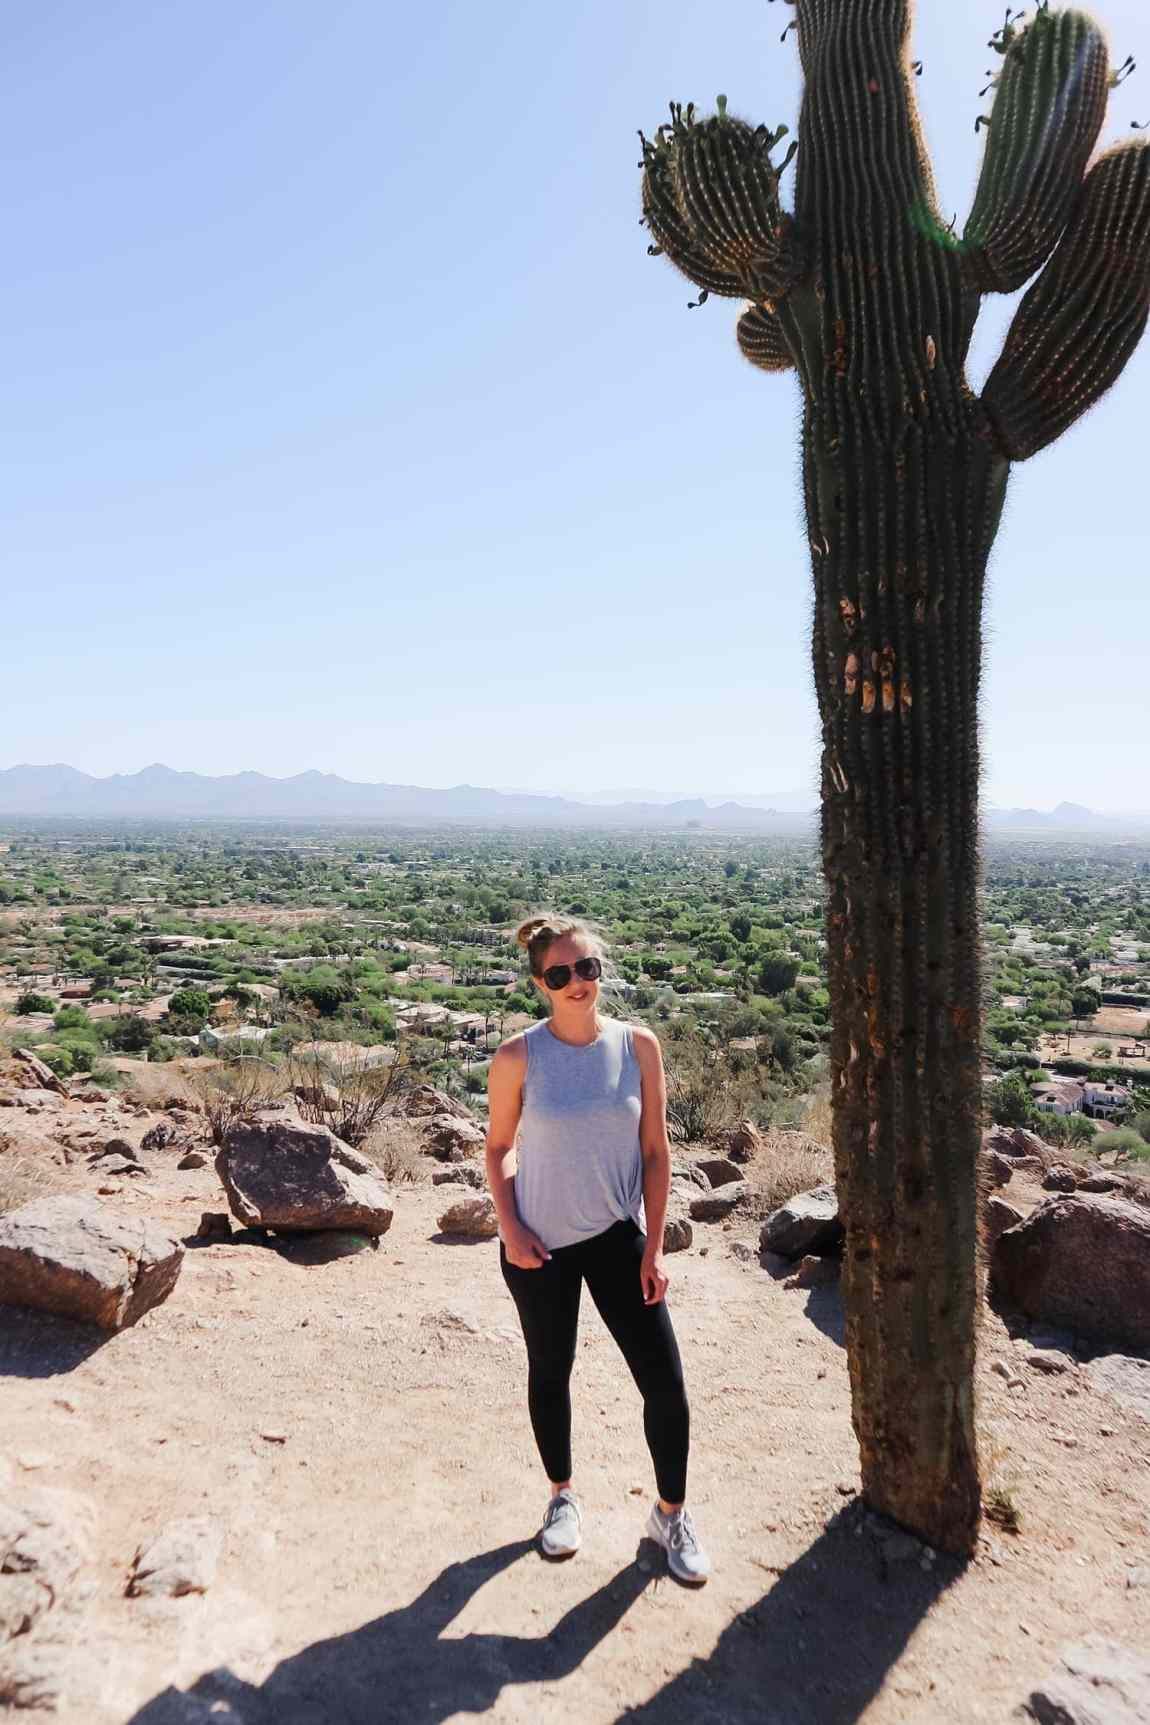 Camelback Mountain - as seen on Scottsdale weekend travel guide by Meg O. on the Go